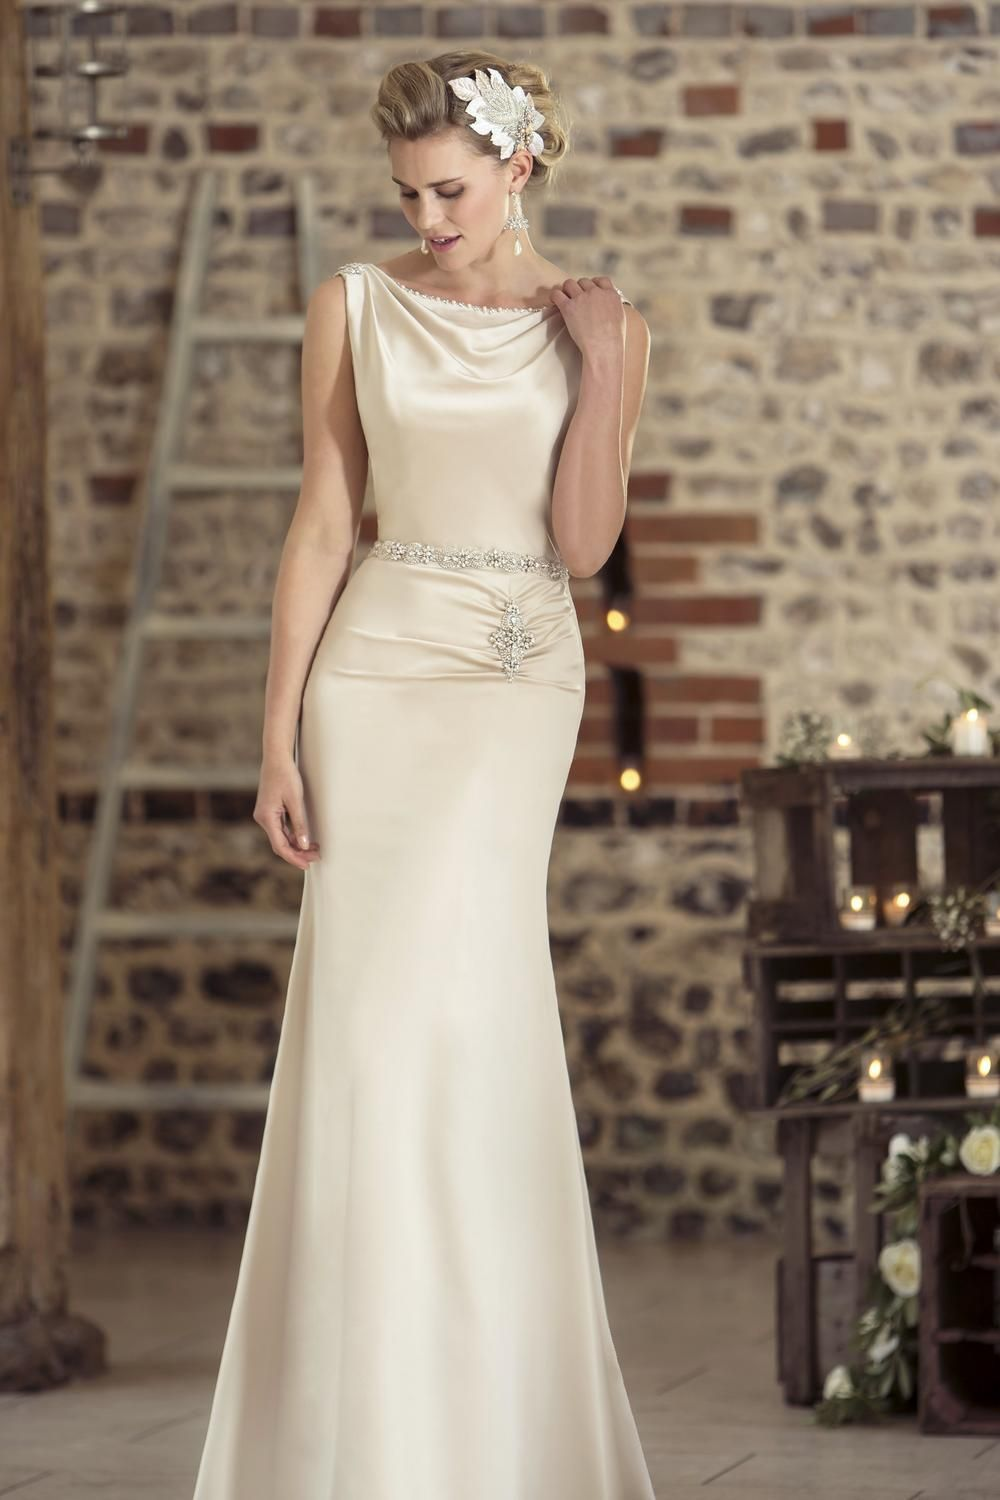 Contemporary wedding dresses and vintage inspired bridal gowns contemporary wedding dresses and vintage inspired bridal gowns w238 true bride bridesmaid ombrellifo Image collections